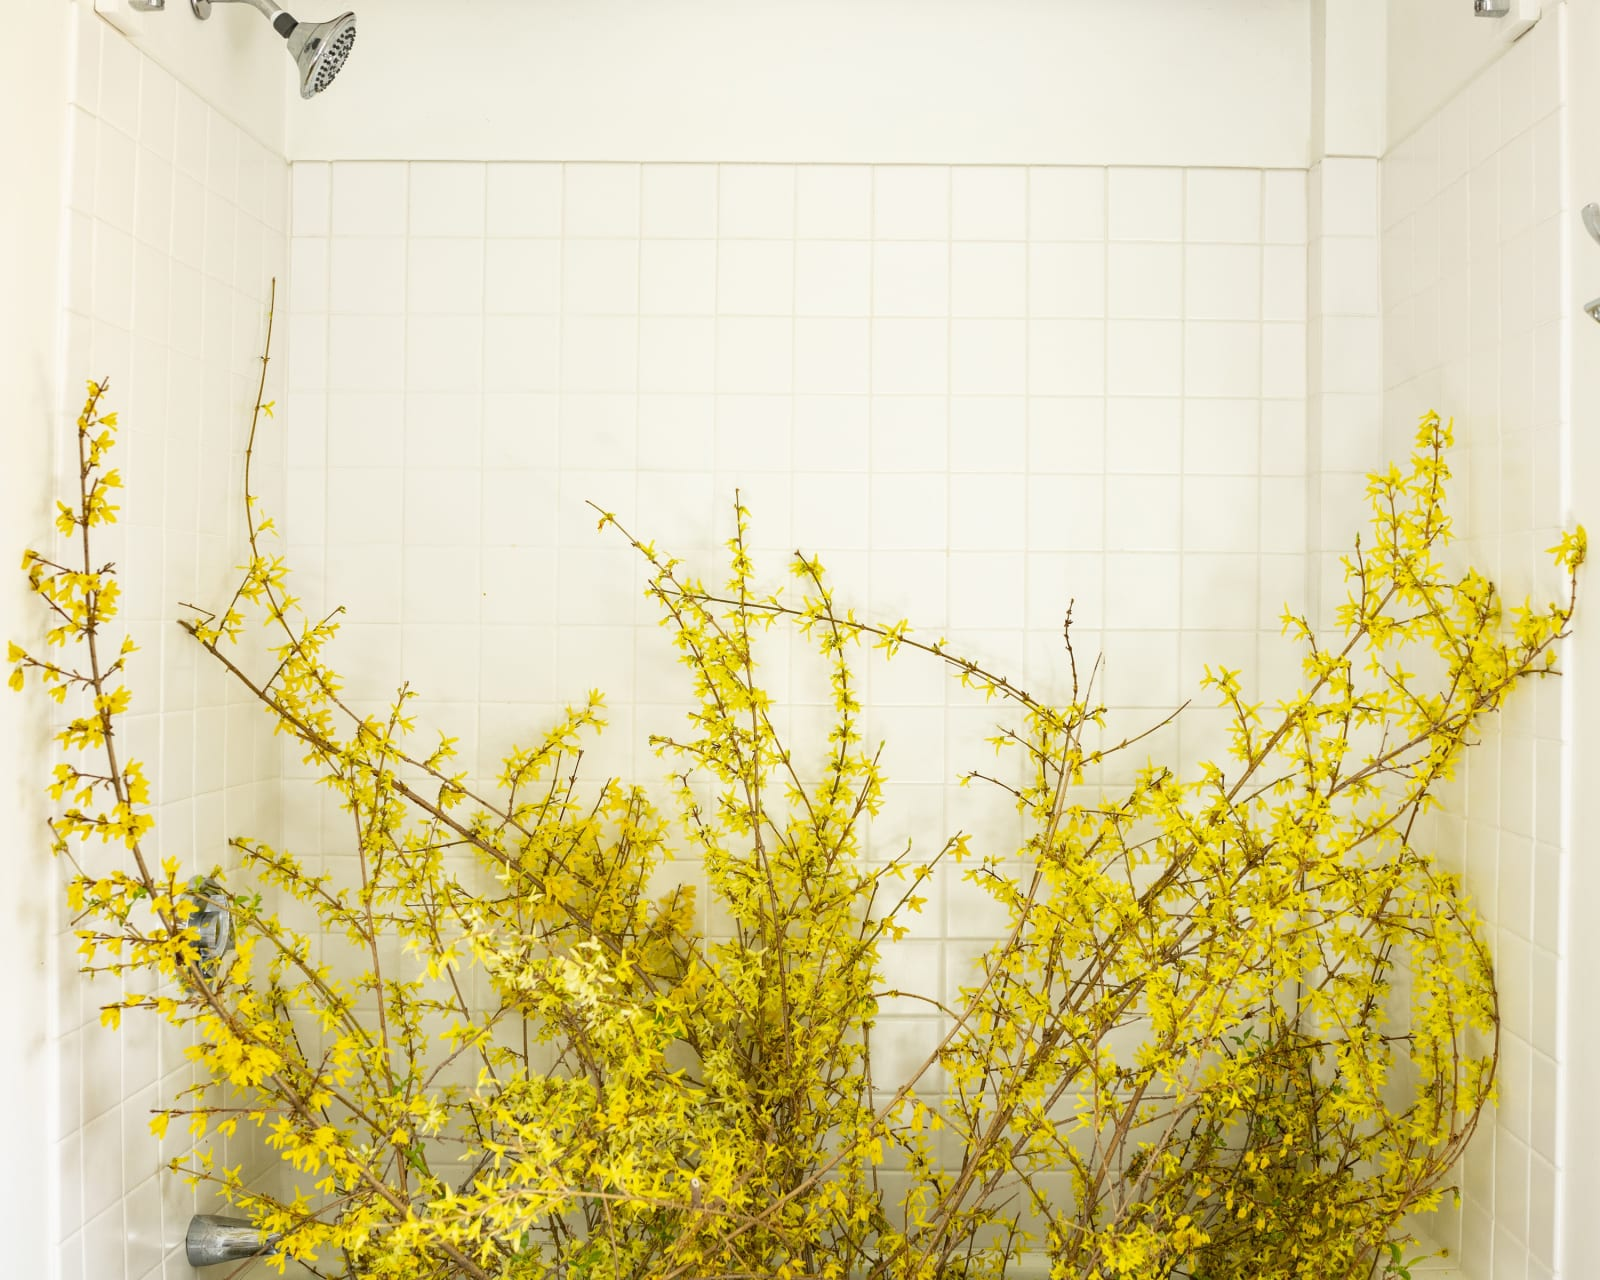 Cig Harvey, Forsythia in the Bathtub (forced), 2020 16 x 20 inch chromogenic dye coupler print Edition of 10 30 x 40 inch chromogenic dye coupler print Edition of 7